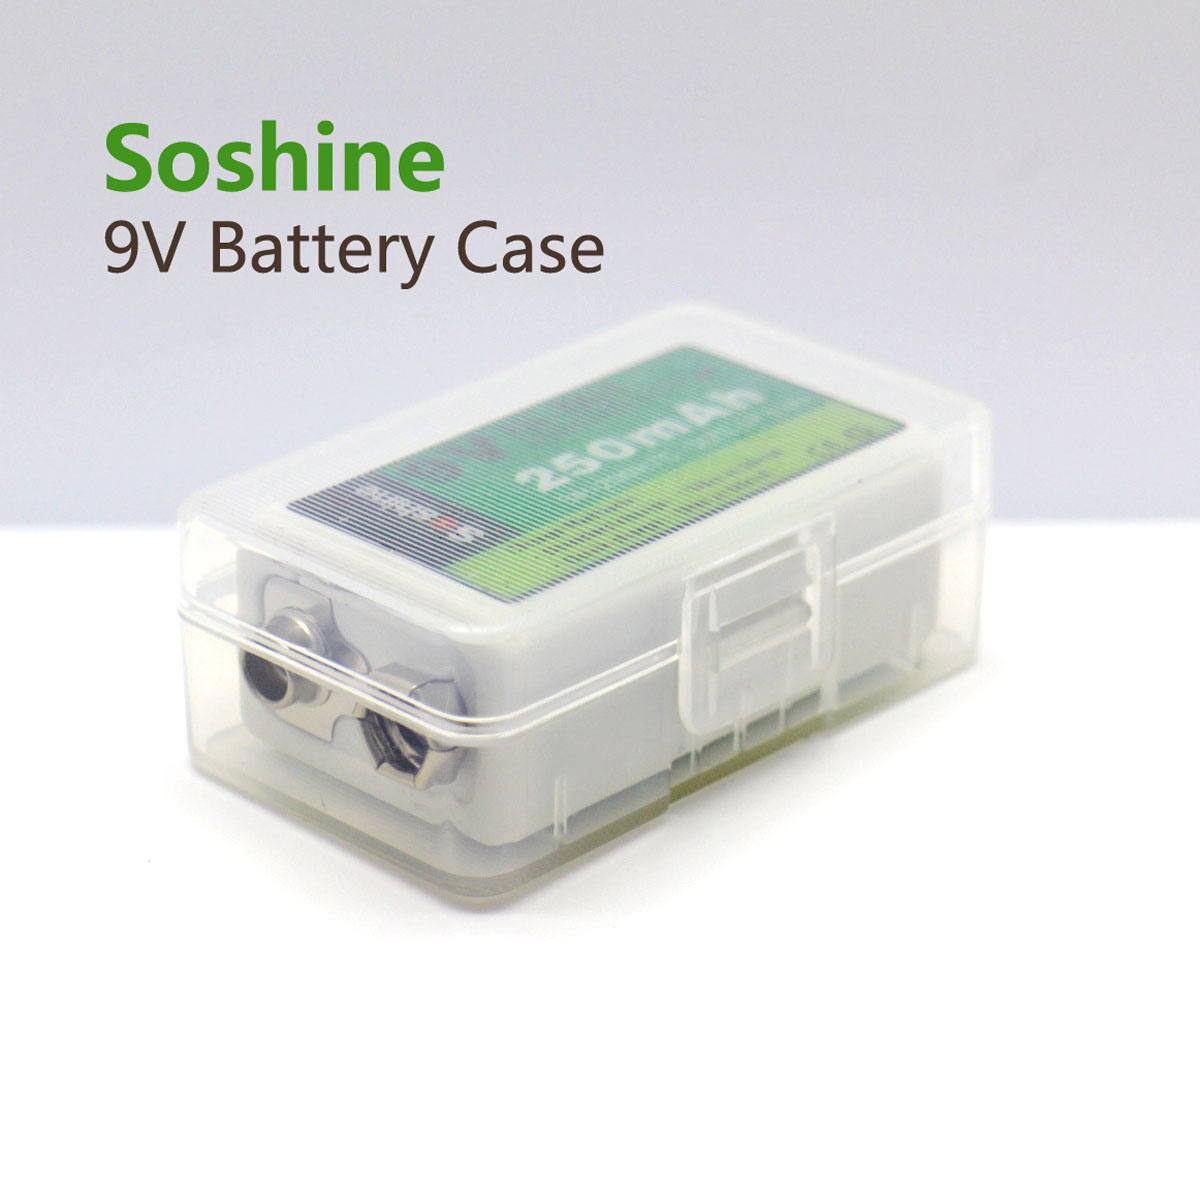 new product e8d34 8f4e3 Bulk Wholesale 9V Battery Storage Case - Soshine